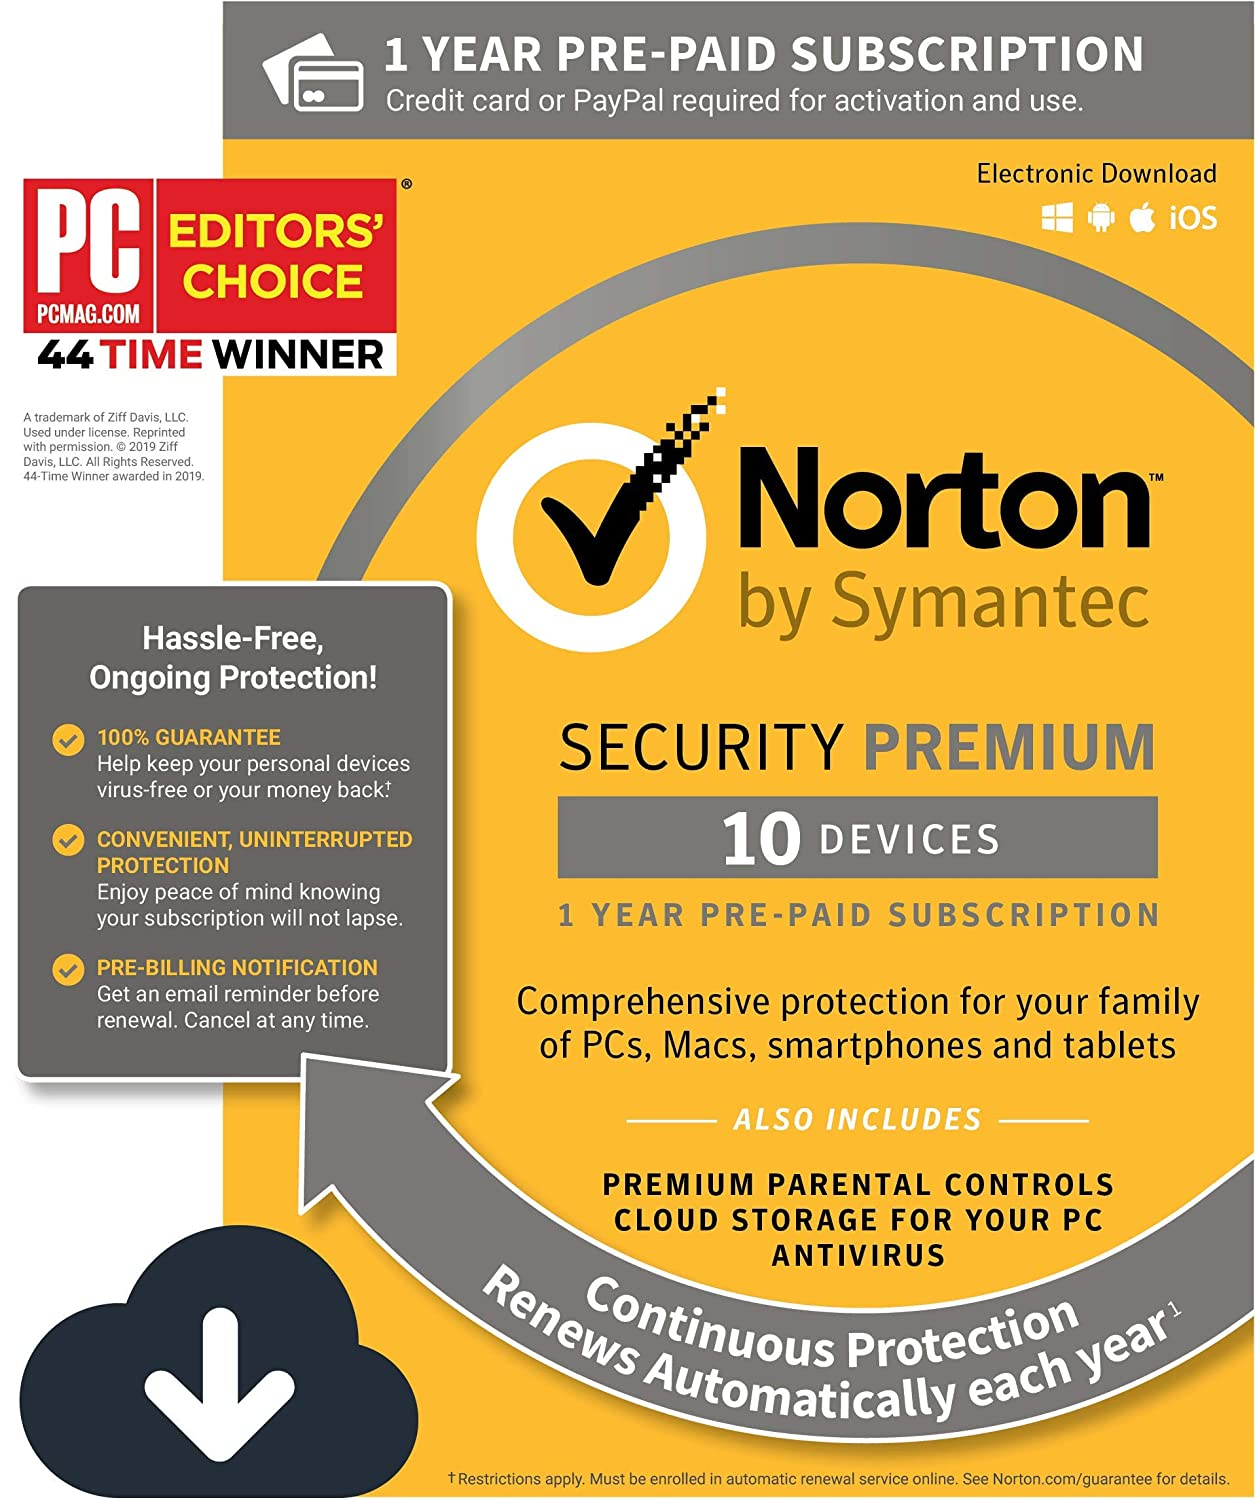 Norton Security Premium – Antivirus software for 10 Devices with Auto  Renewal, Requires Payment Method – 1 Year Pre-Paid Subscription  [PC/Mac/Mobile